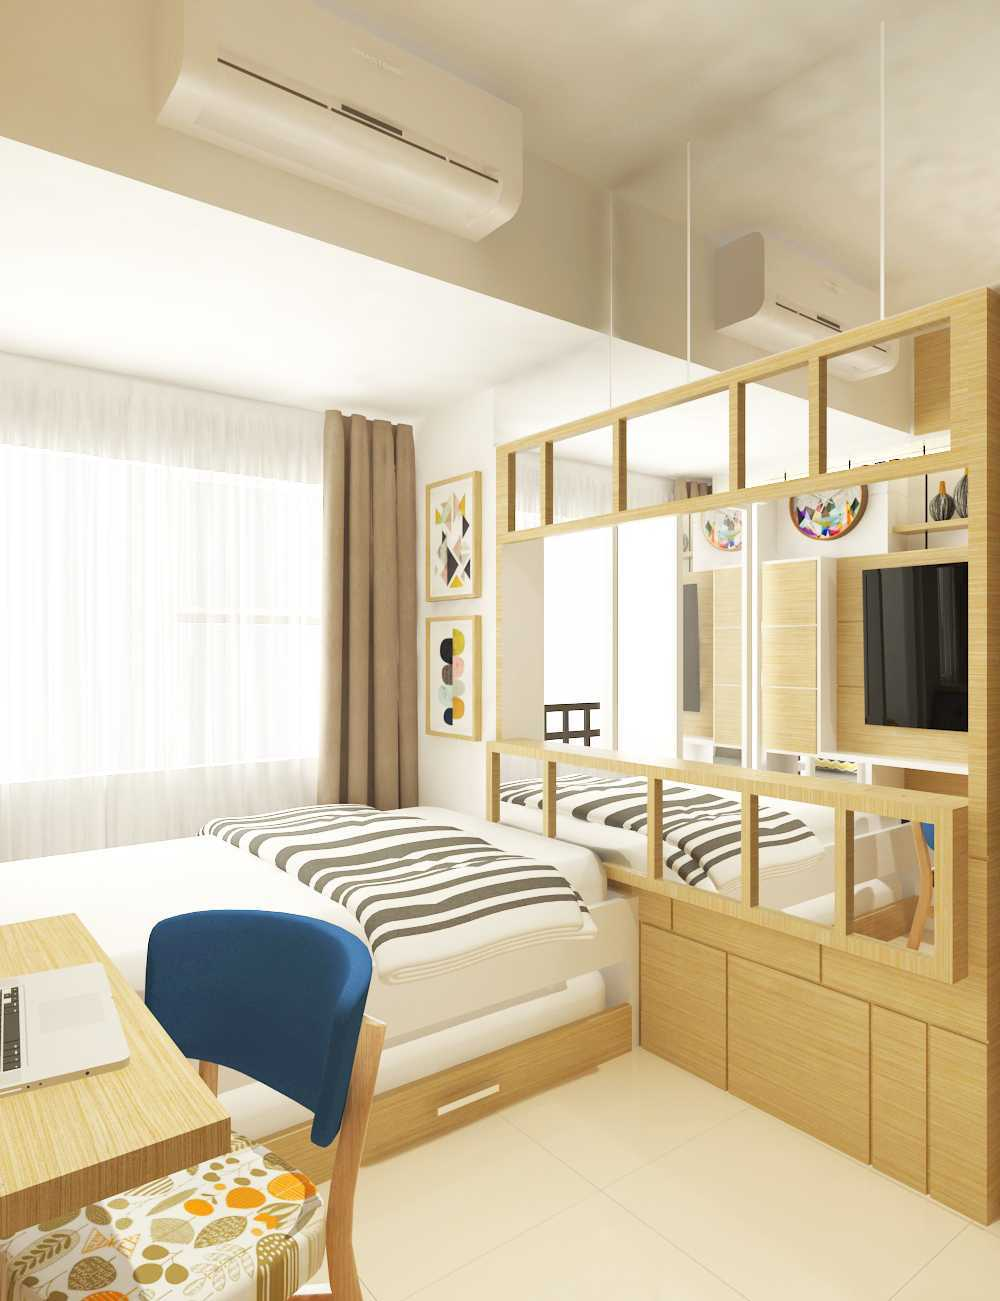 Miv Architects (Ar. Muhammad Ikhsan Hamiru, Iai & Partners) Interior Design Of Apartment Unit Makassar, South Sulawesi, Indonesia Makassar, South Sulawesi, Indonesia Apartment Room Design Skandinavia 29143